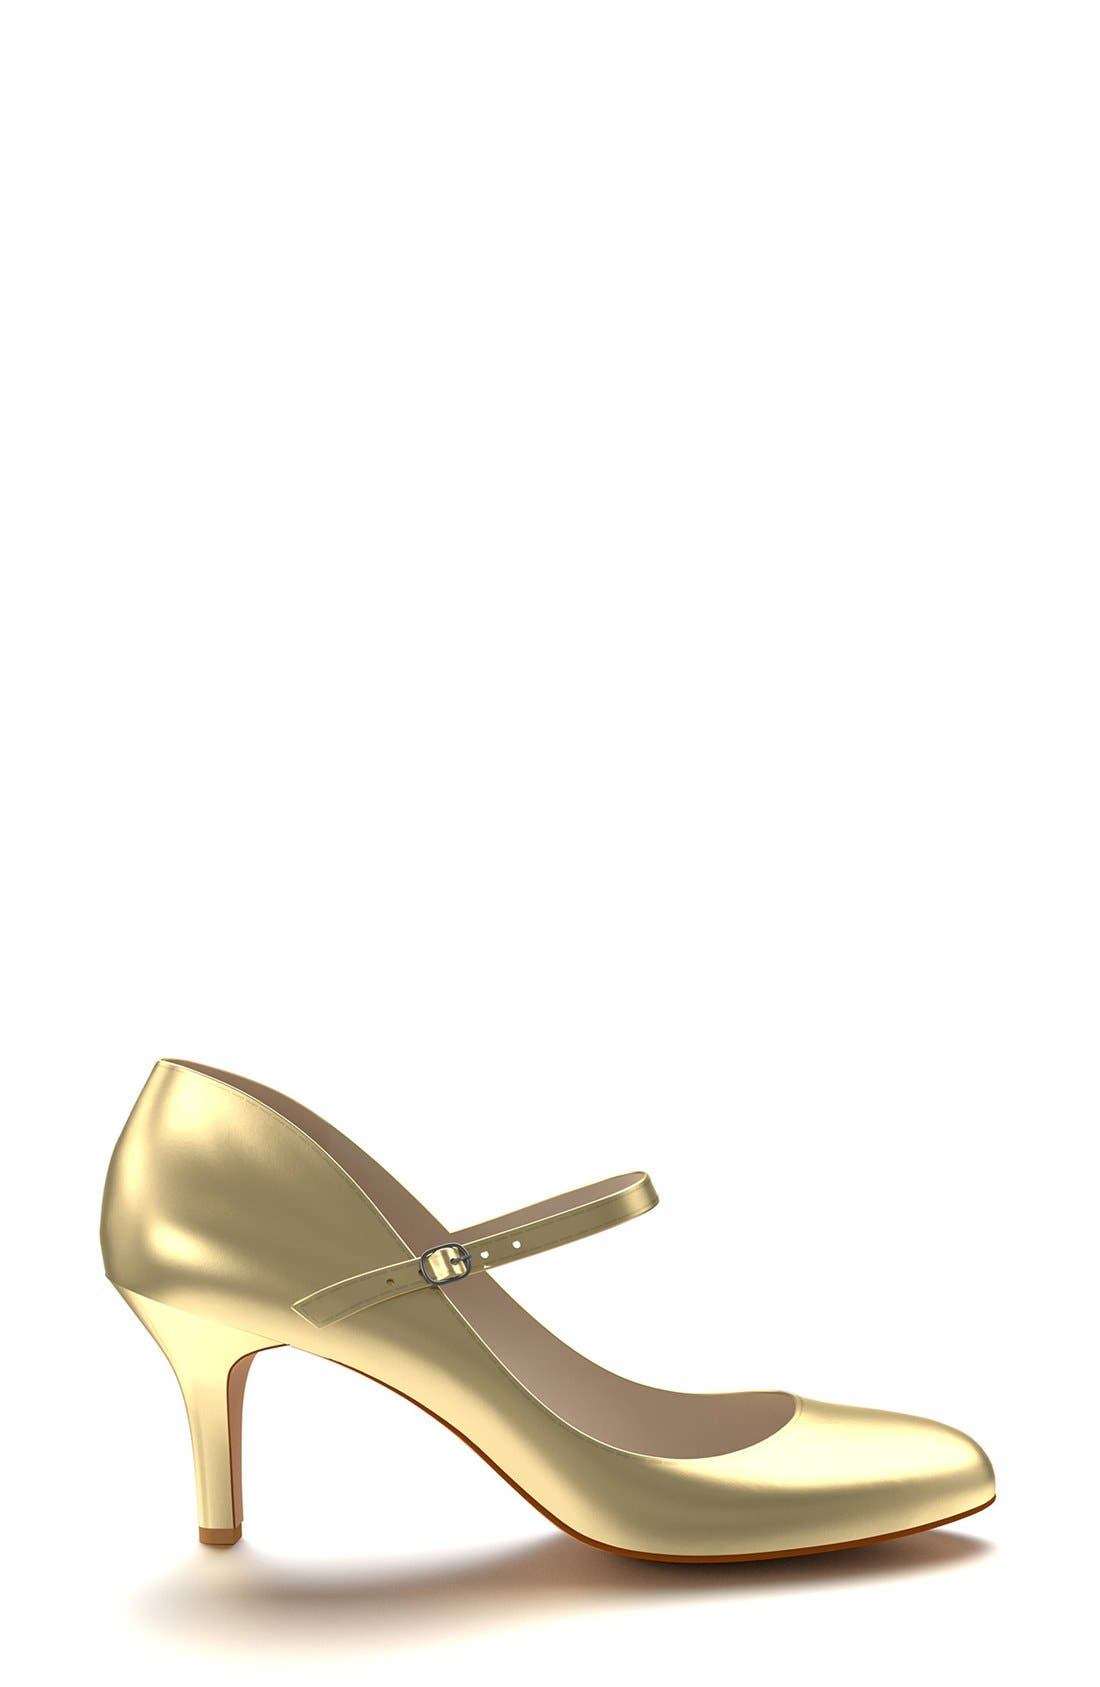 SHOES OF PREY,                              Mary Jane Pump,                             Alternate thumbnail 6, color,                             710